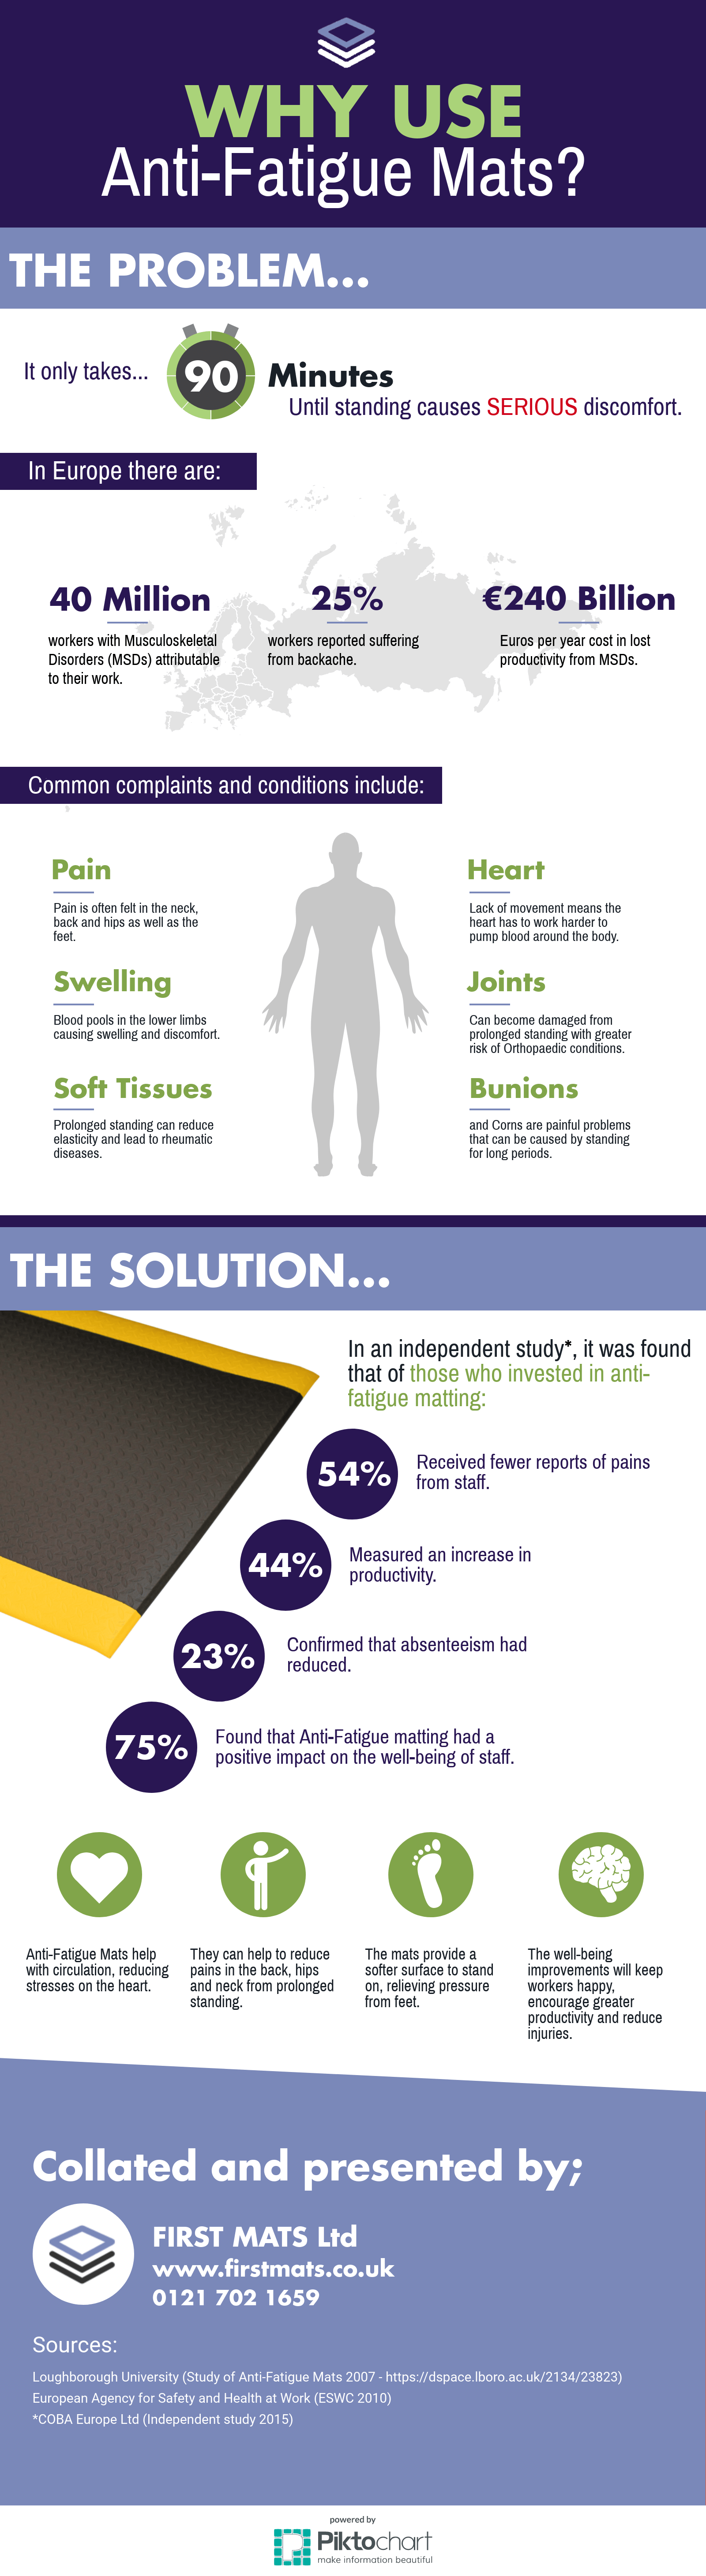 First-Mats-Why-Use-Anti-Fatigue-Mats-infographic-plaza